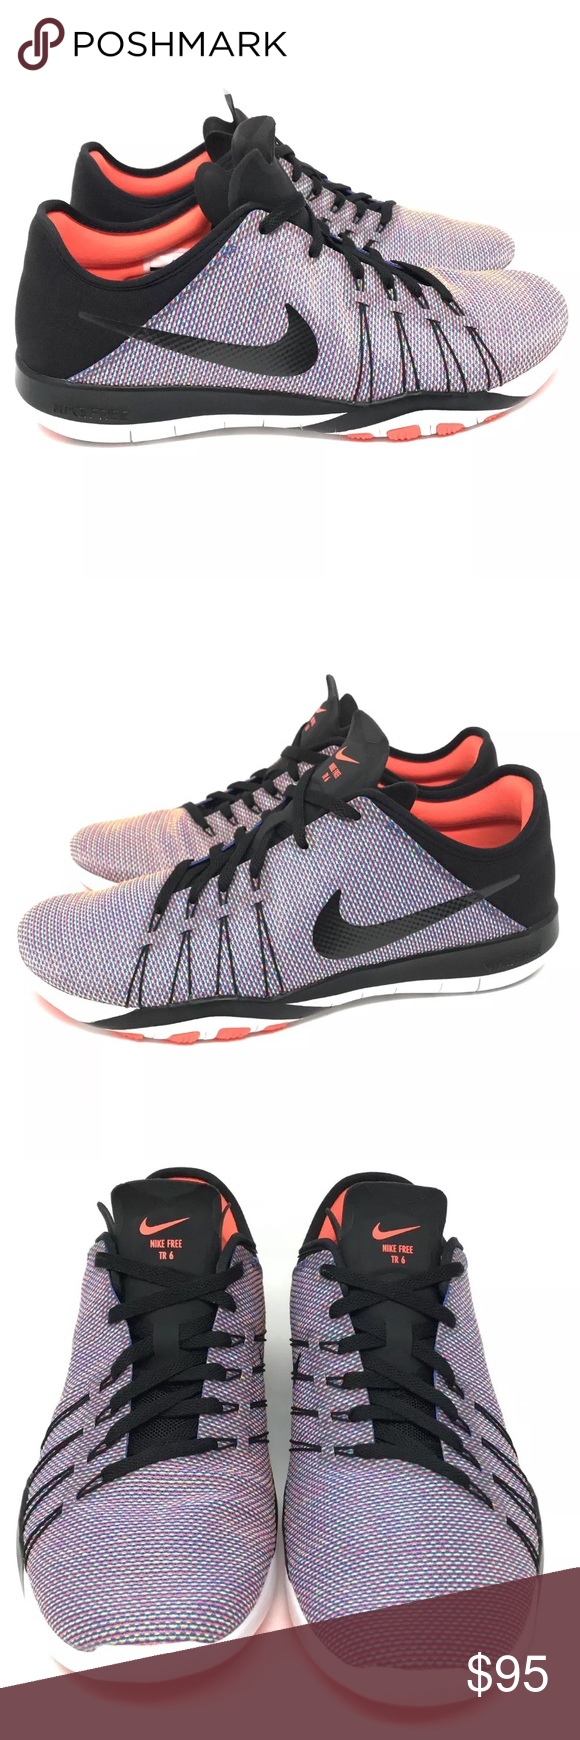 check out ad49d 4f1fc Nike Free TR 6 print womens running shoes Nike Free TR 6 print womens  running shoes black purple Style  833424-006 Women s size 8.5 Brand new  without box ...